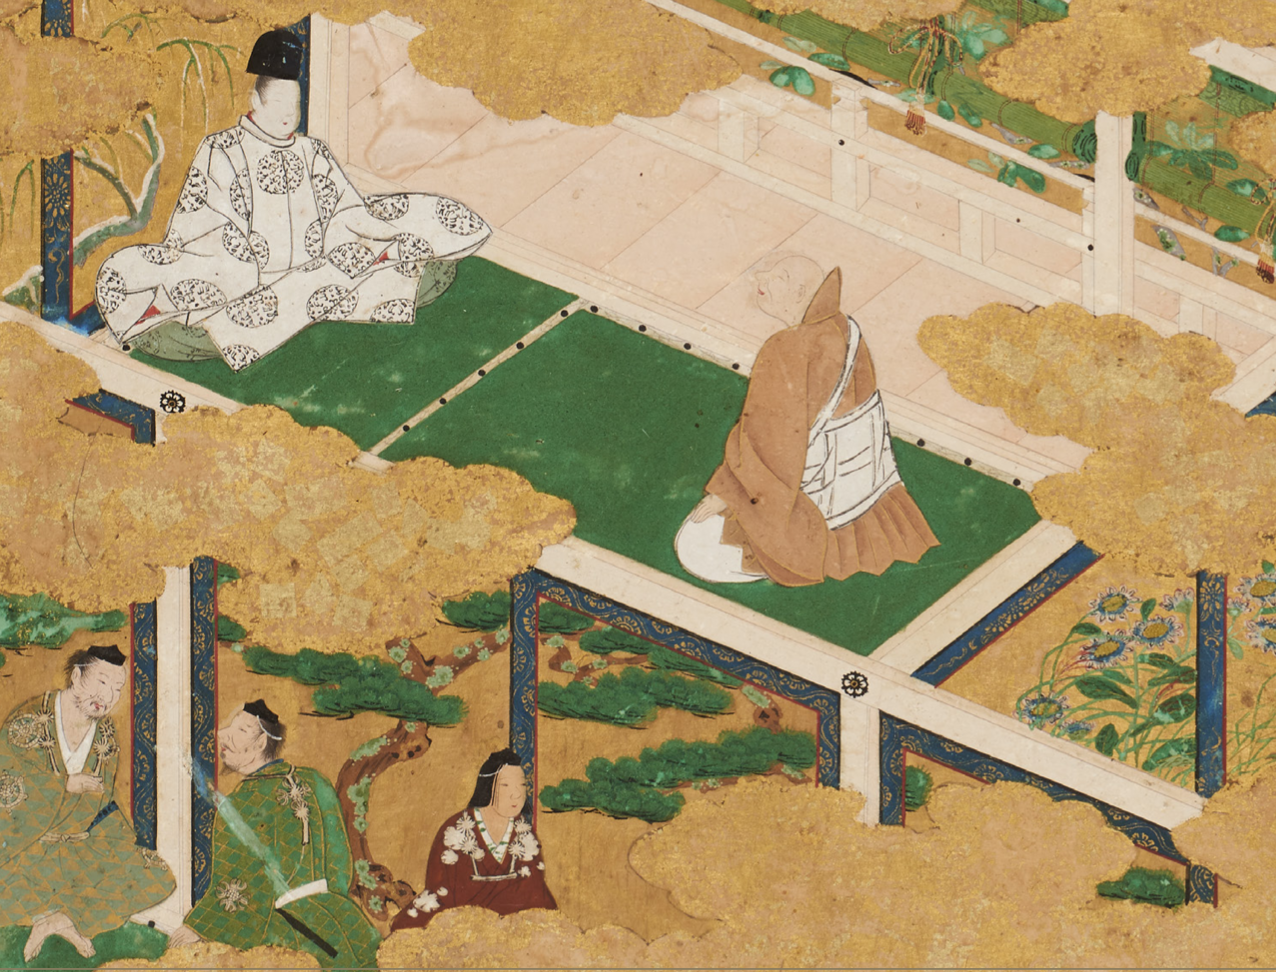 Online Round Table Instances of Selfhood in The Tale of Genji and Beyond